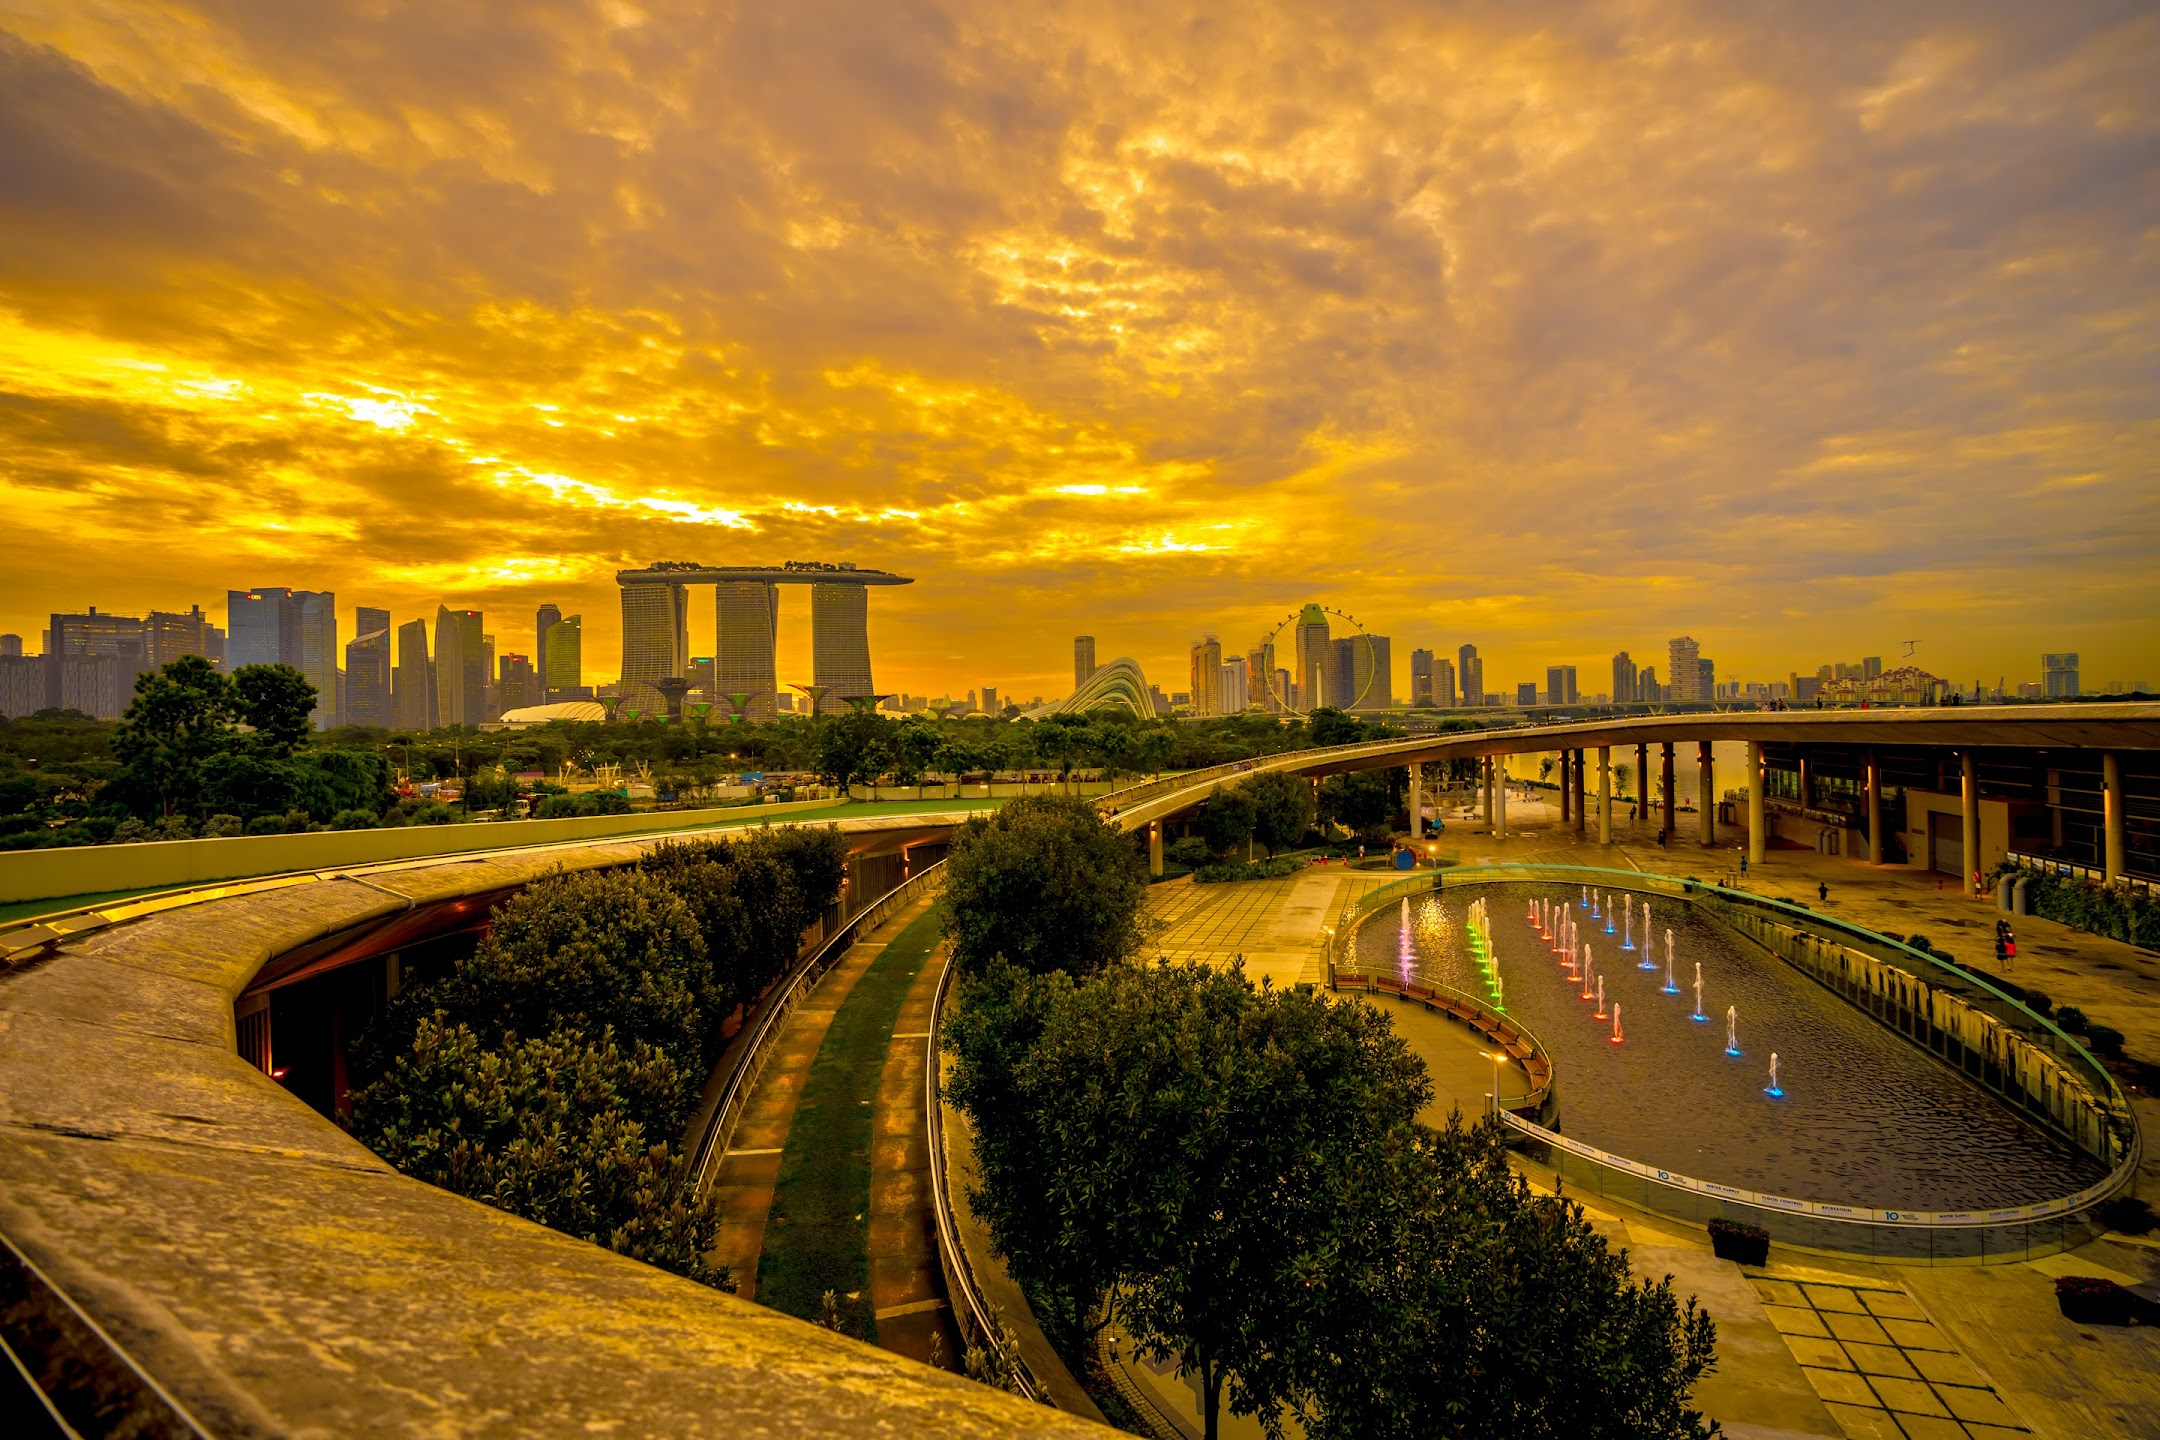 Singapore Marina Barrage evening5